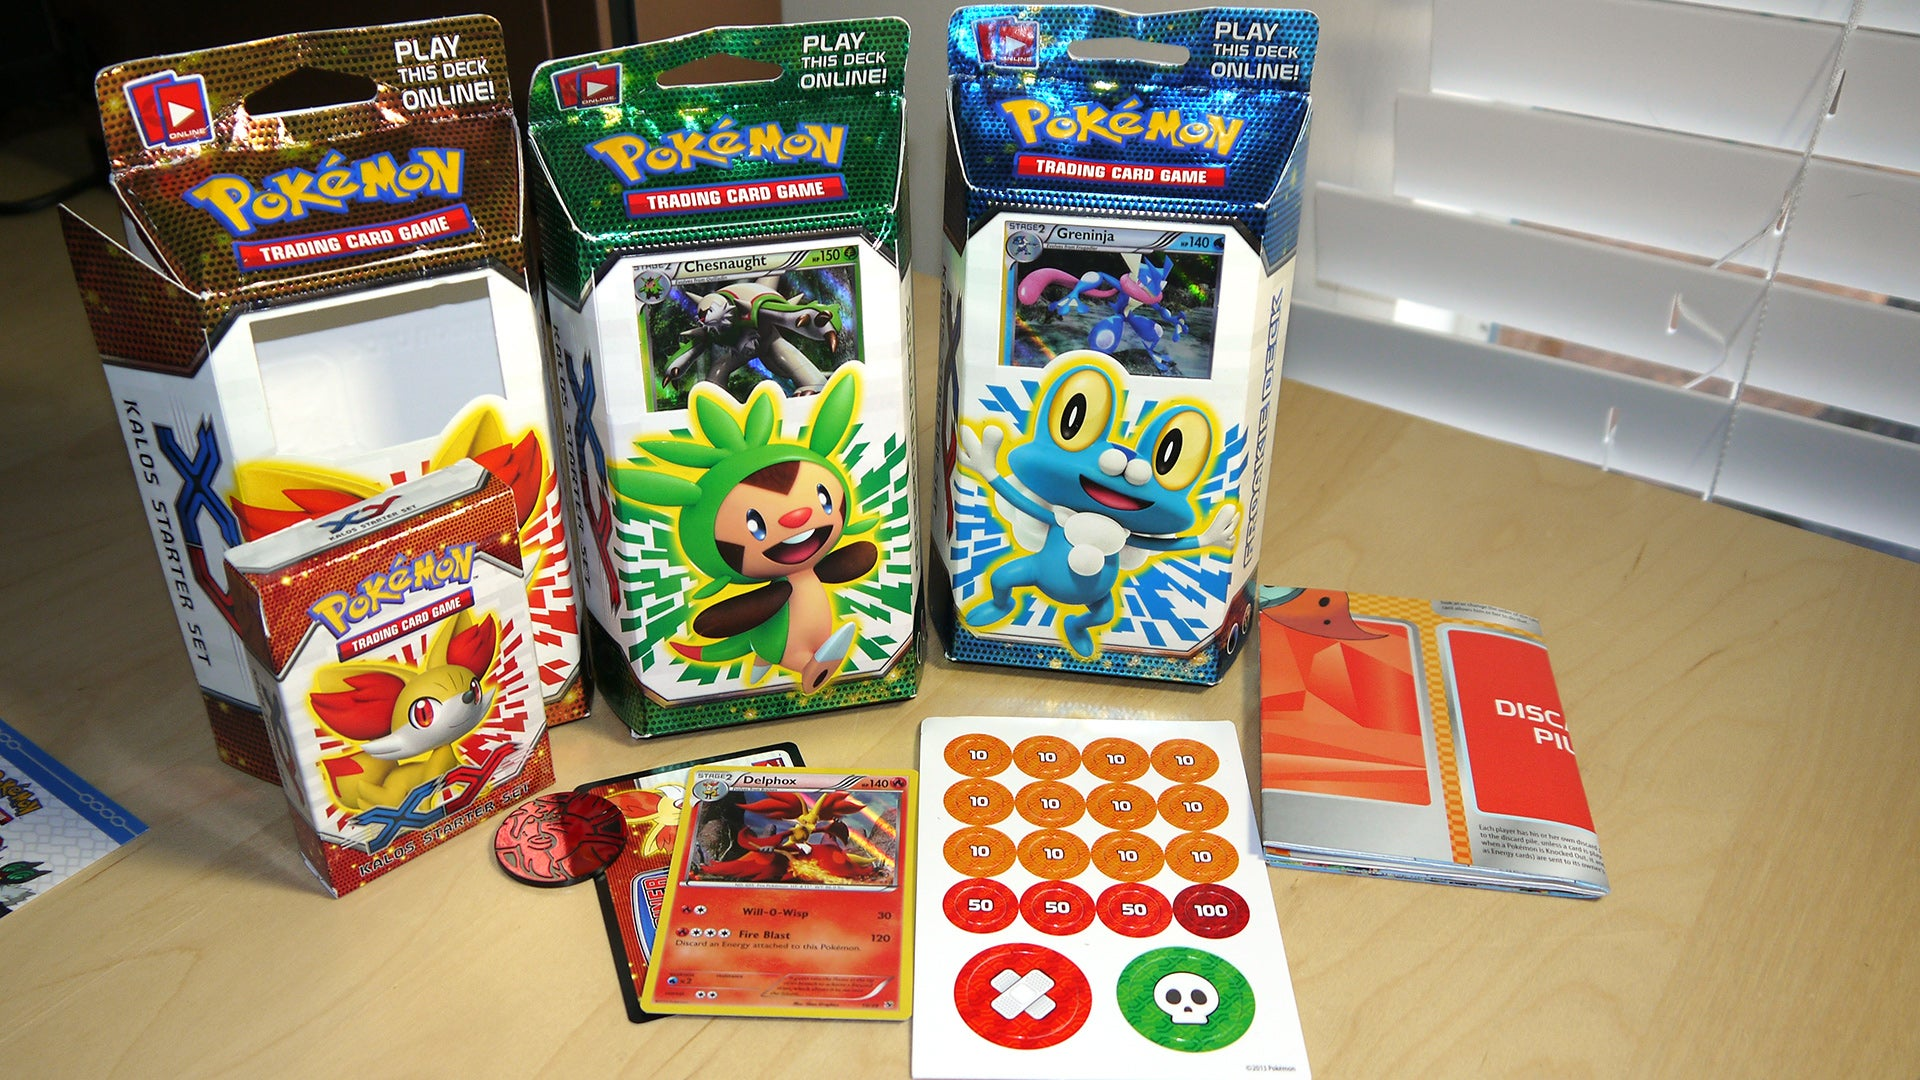 Getting Started With The Pokémon Trading Card Game